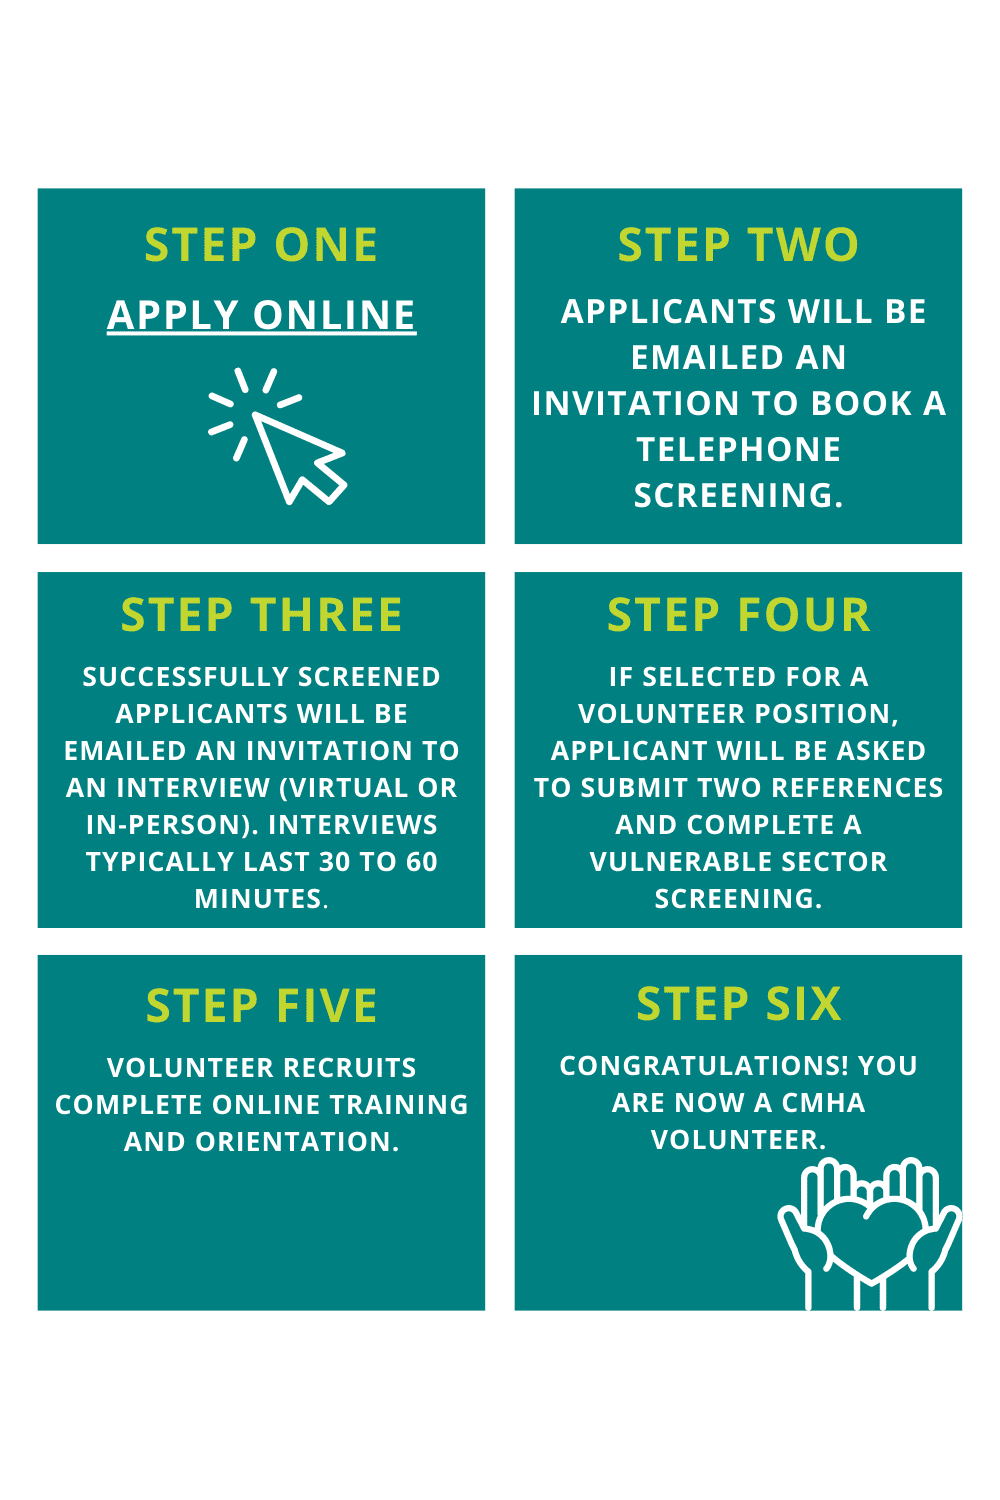 An infographic outlining the six steps to take to become a volunteer with the CMHA.